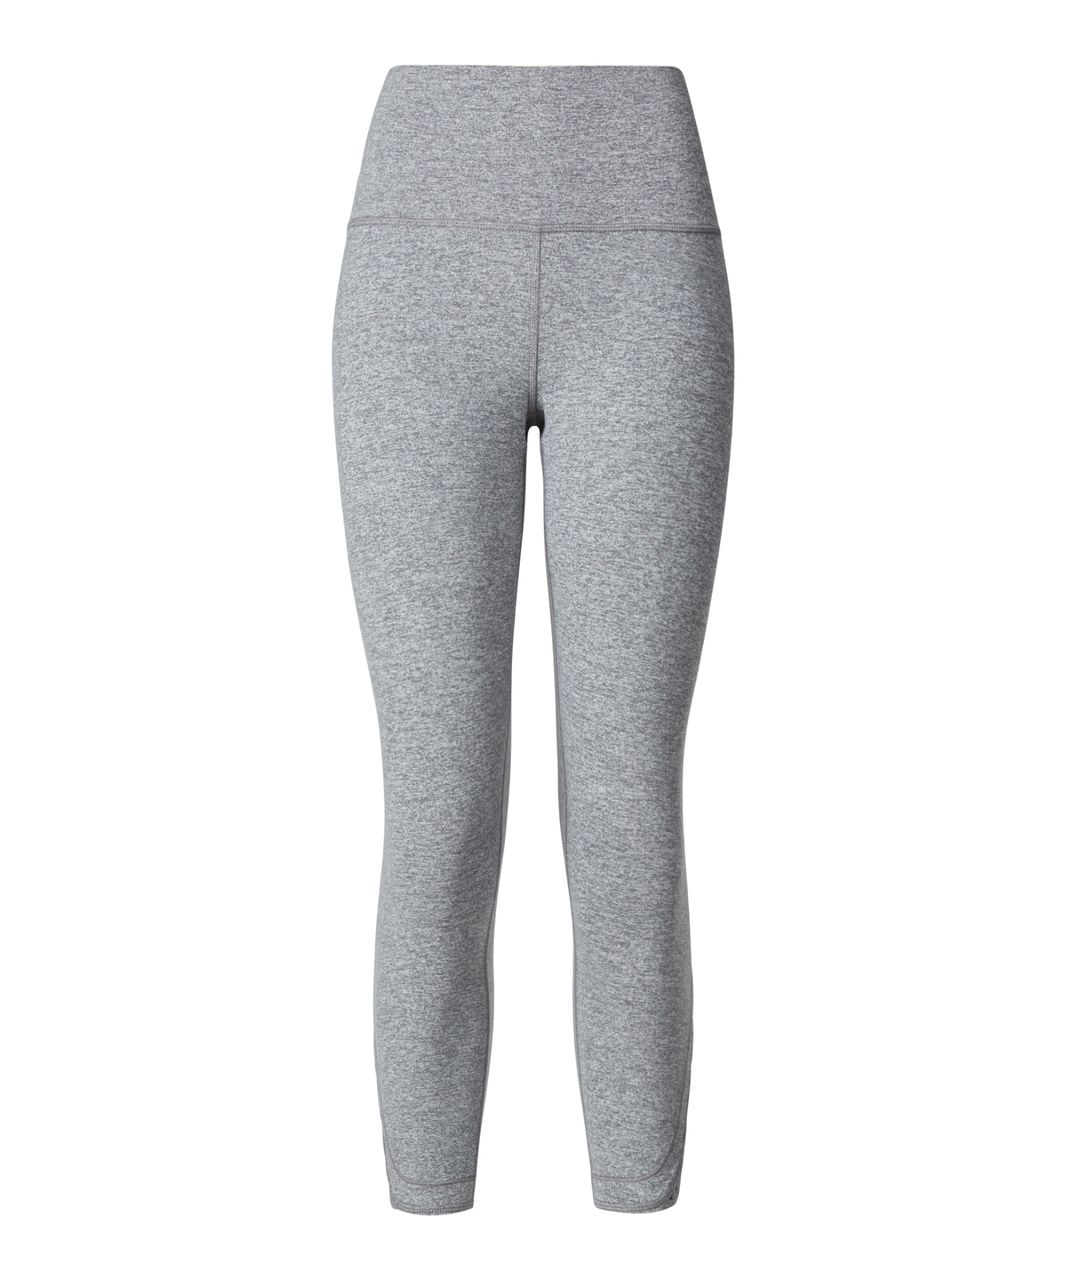 Lululemon True Self Crop II - Heathered Slate